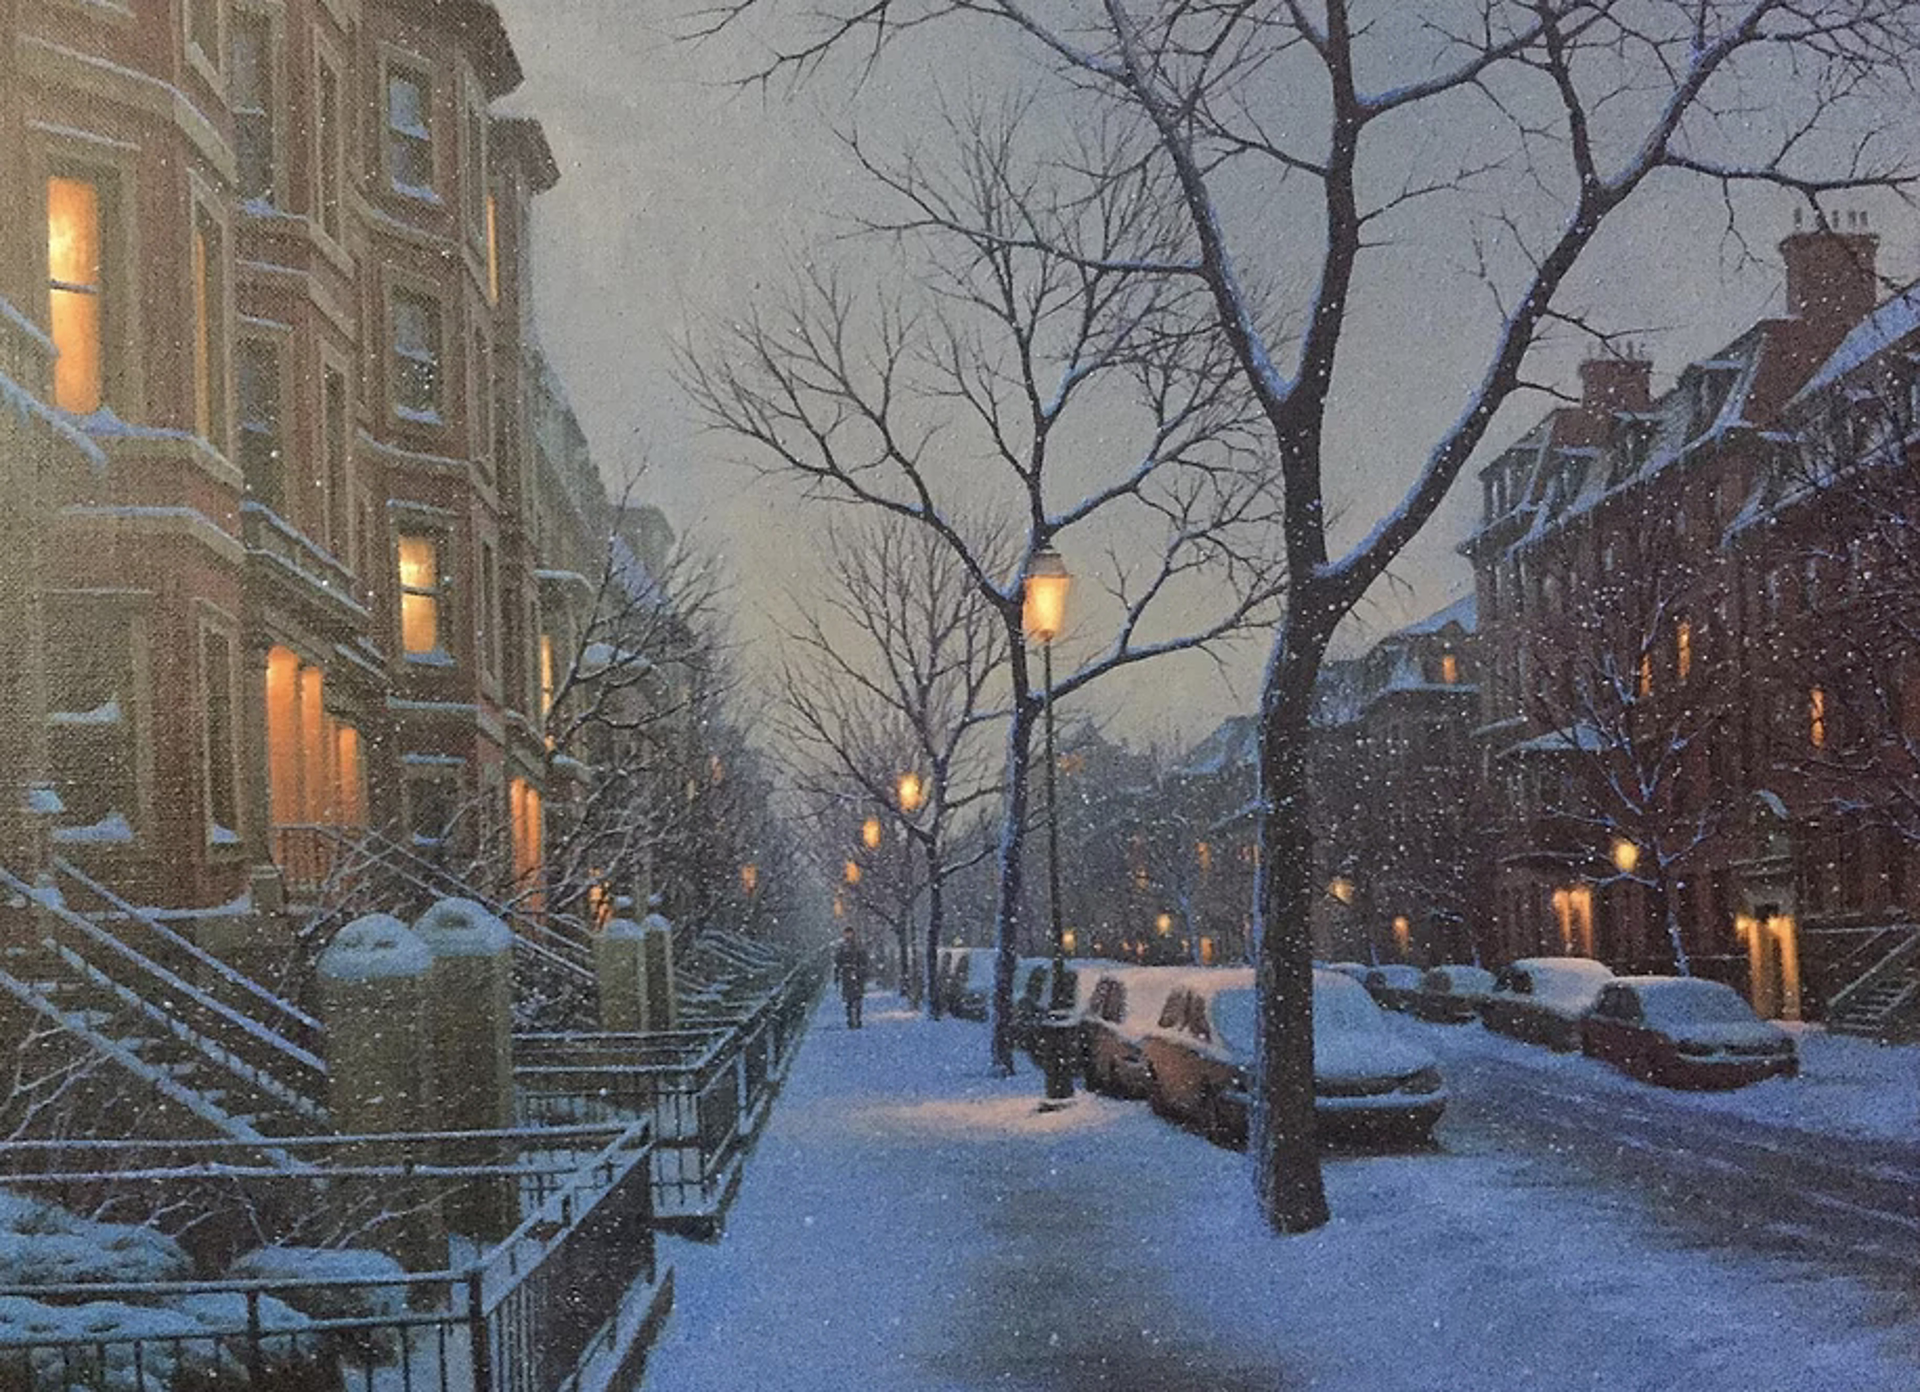 South Boston Flurries by Alexei Butirskiy